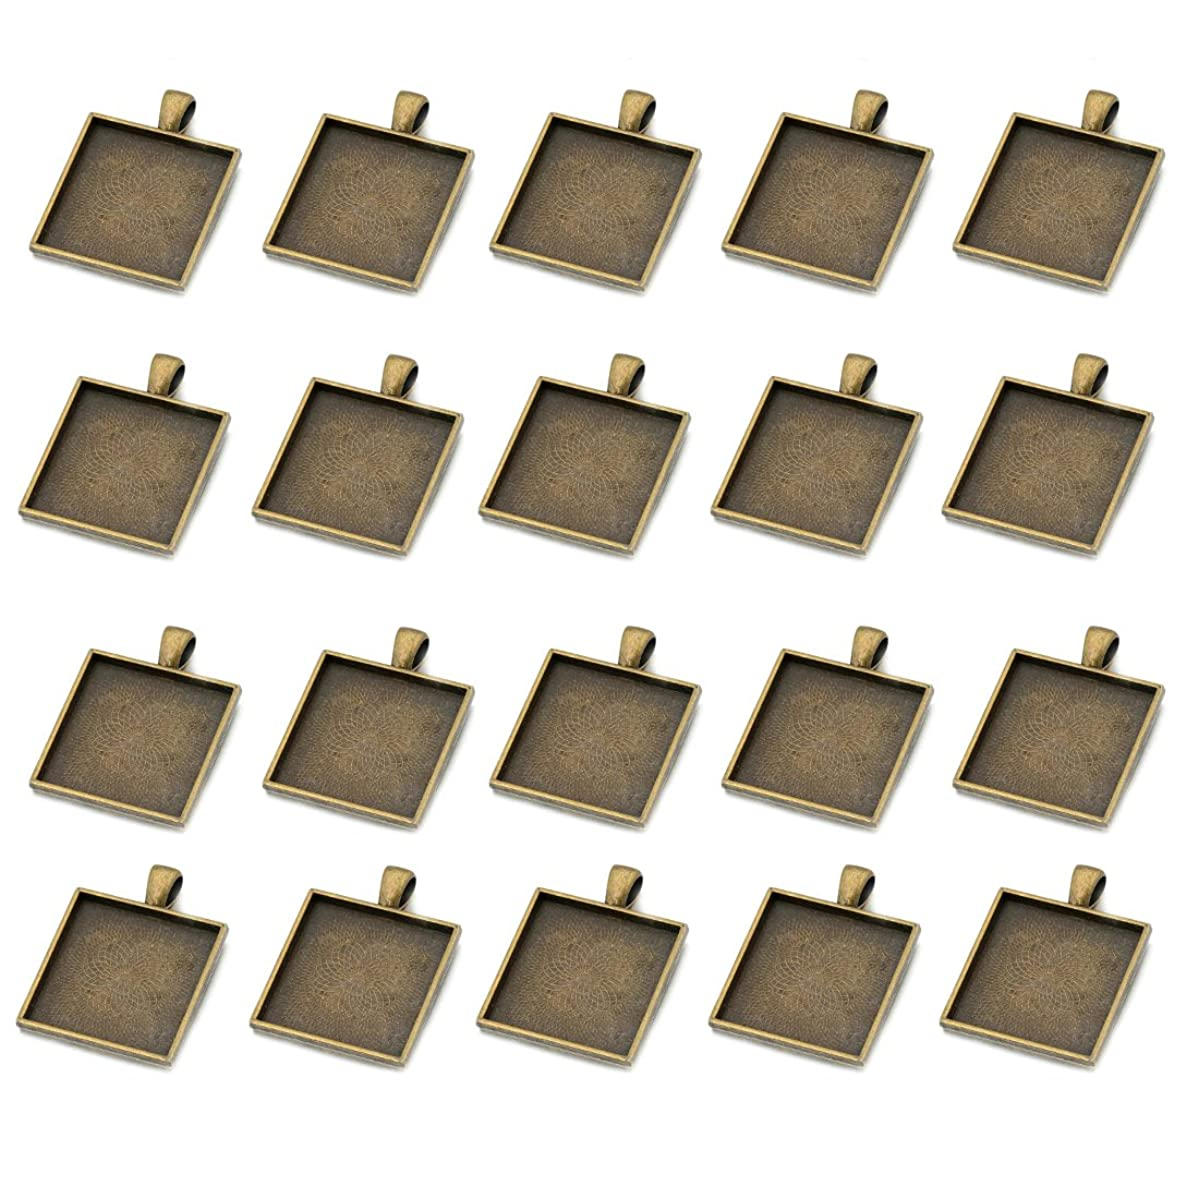 IGOGO 20 PCS Square Pendant Trays Pendant Blanks Cameo Bezel Cabochon Settings 25x25 mm Antique Bronze Color